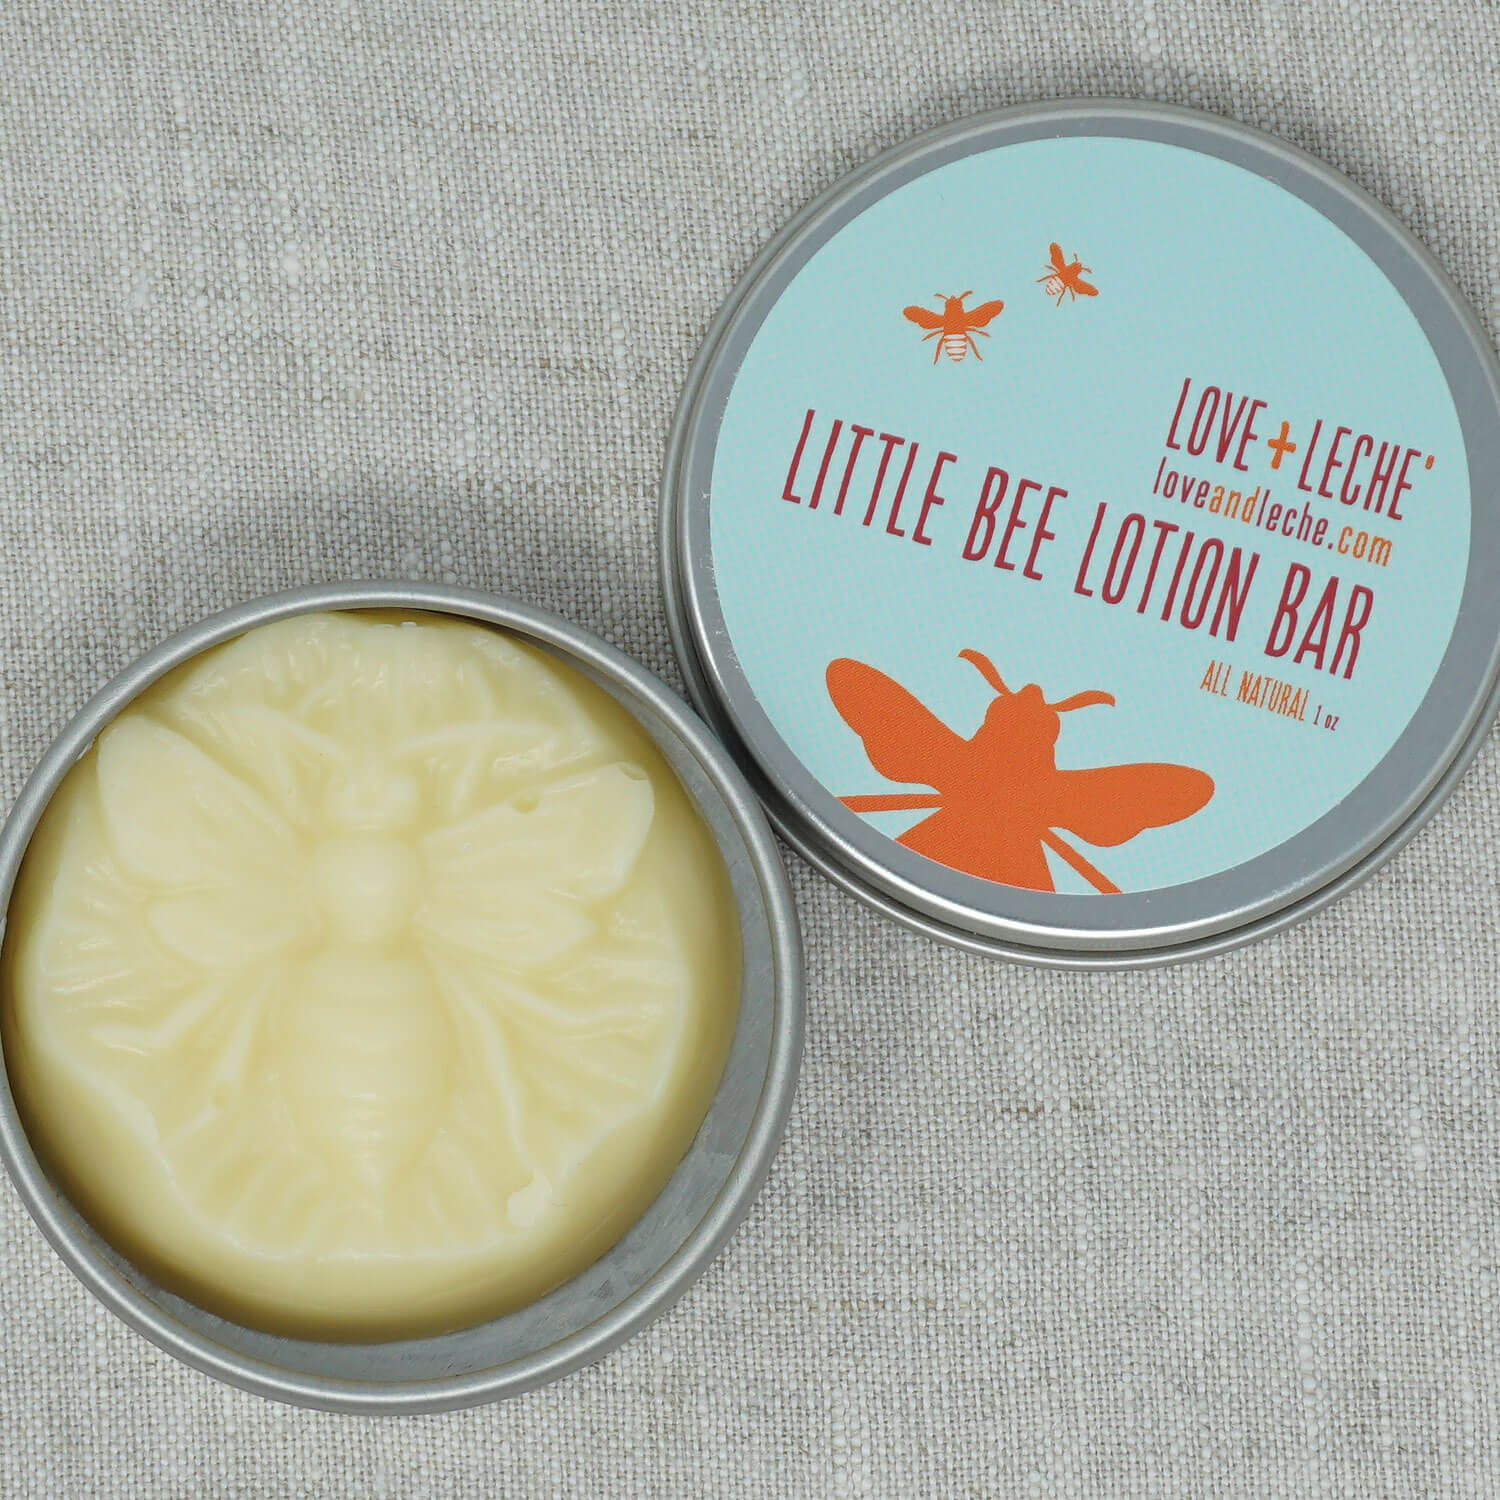 Love + Leche Little Bee Lotion Bar - Spiced Chai | Yarn Worx